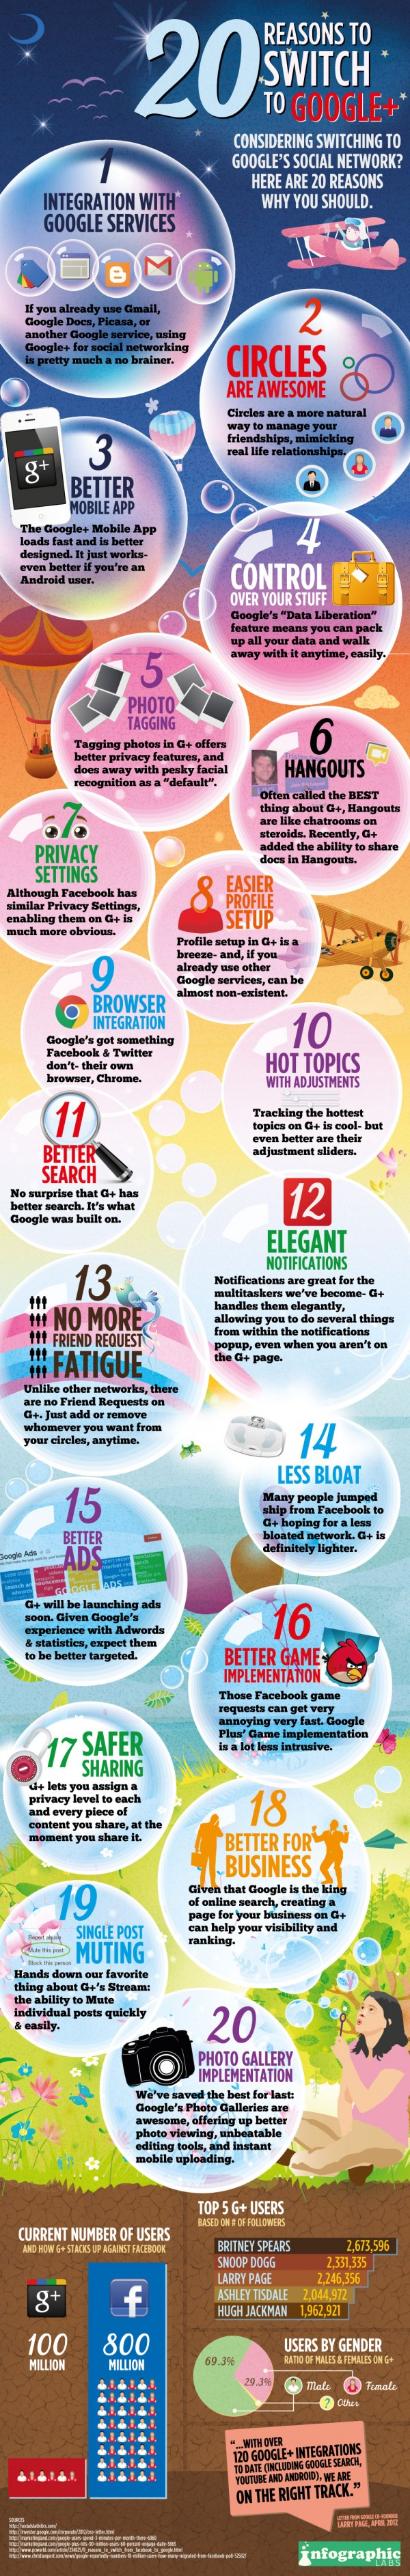 20 Reasons to Switch to Google+. Yes 20 [Infographic]